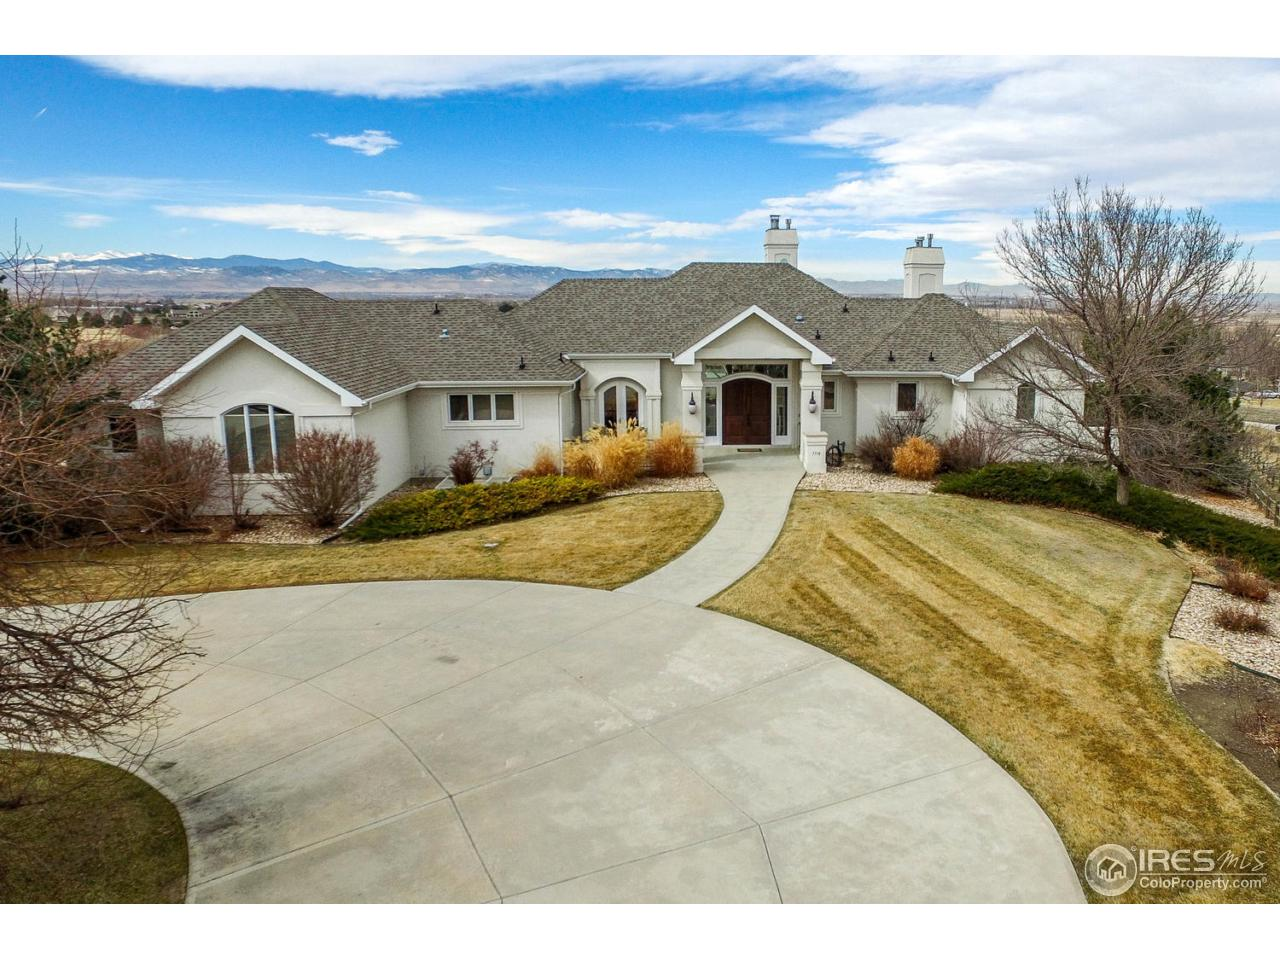 7718 Park Ridge Cir, Fort Collins, CO 80528